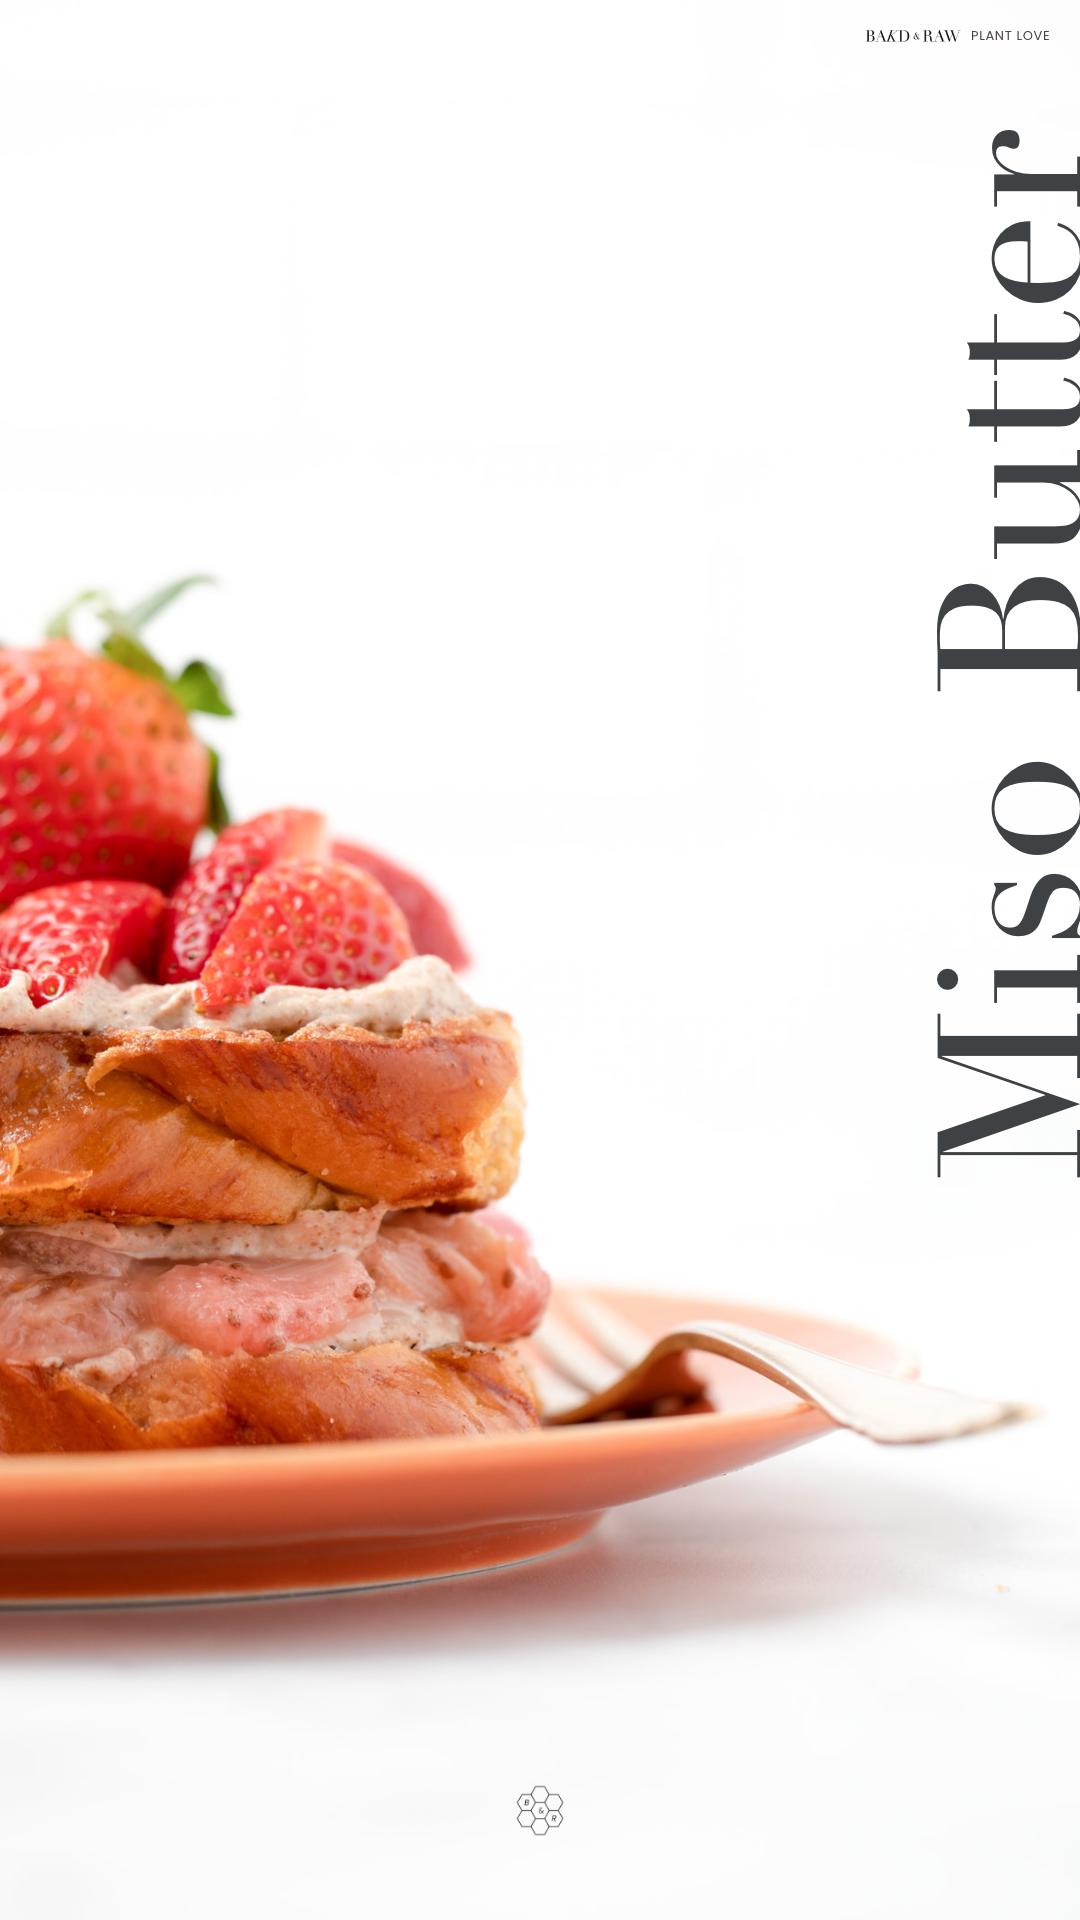 Brioche French Toast ingredient list featuring miso butter by bakd&raw